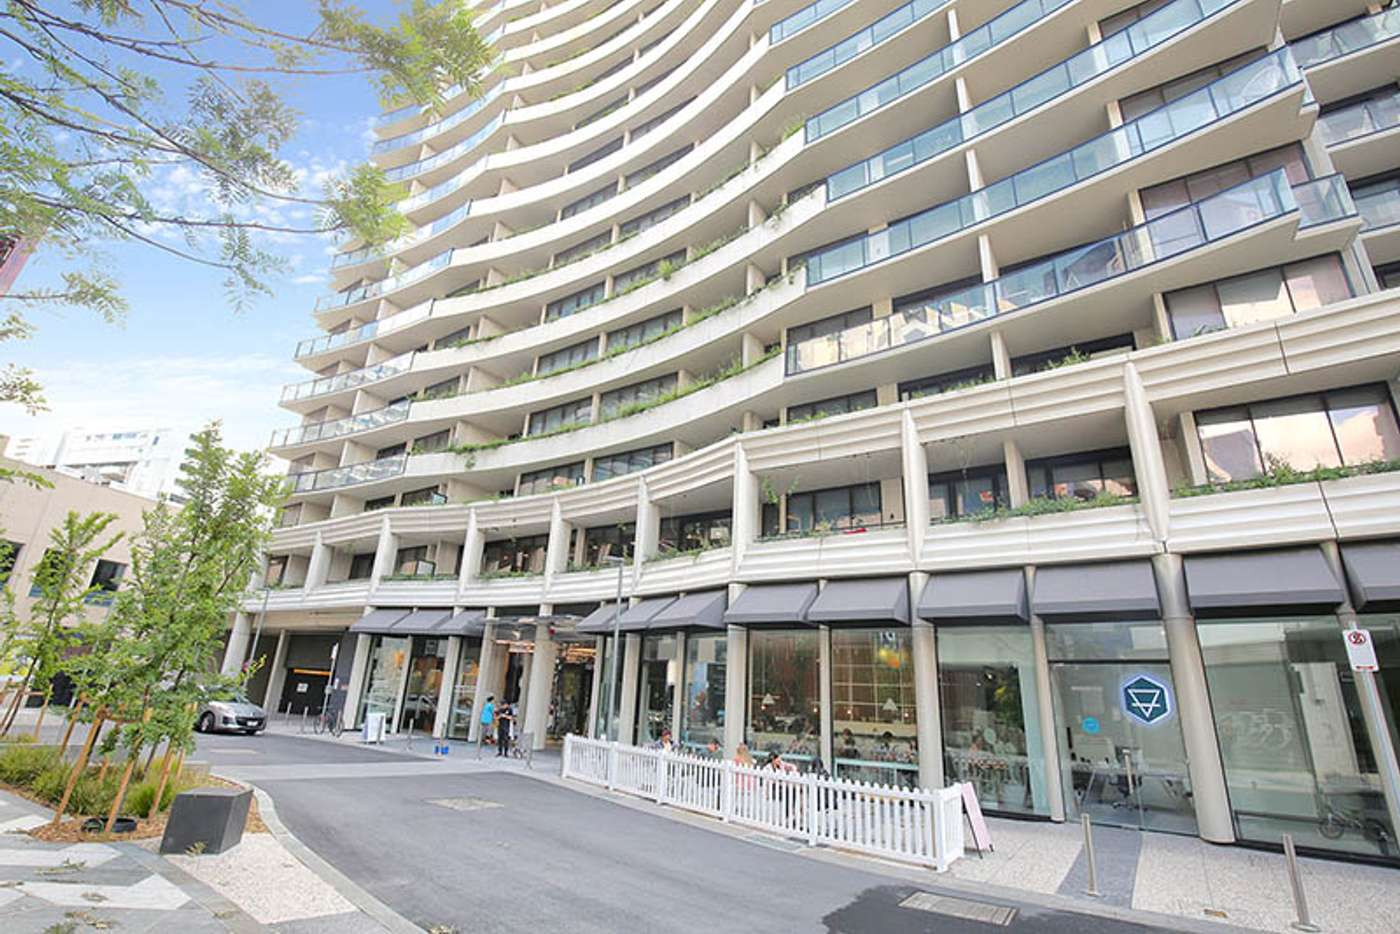 Main view of Homely unit listing, 1112/8 Daly Street, South Yarra VIC 3141